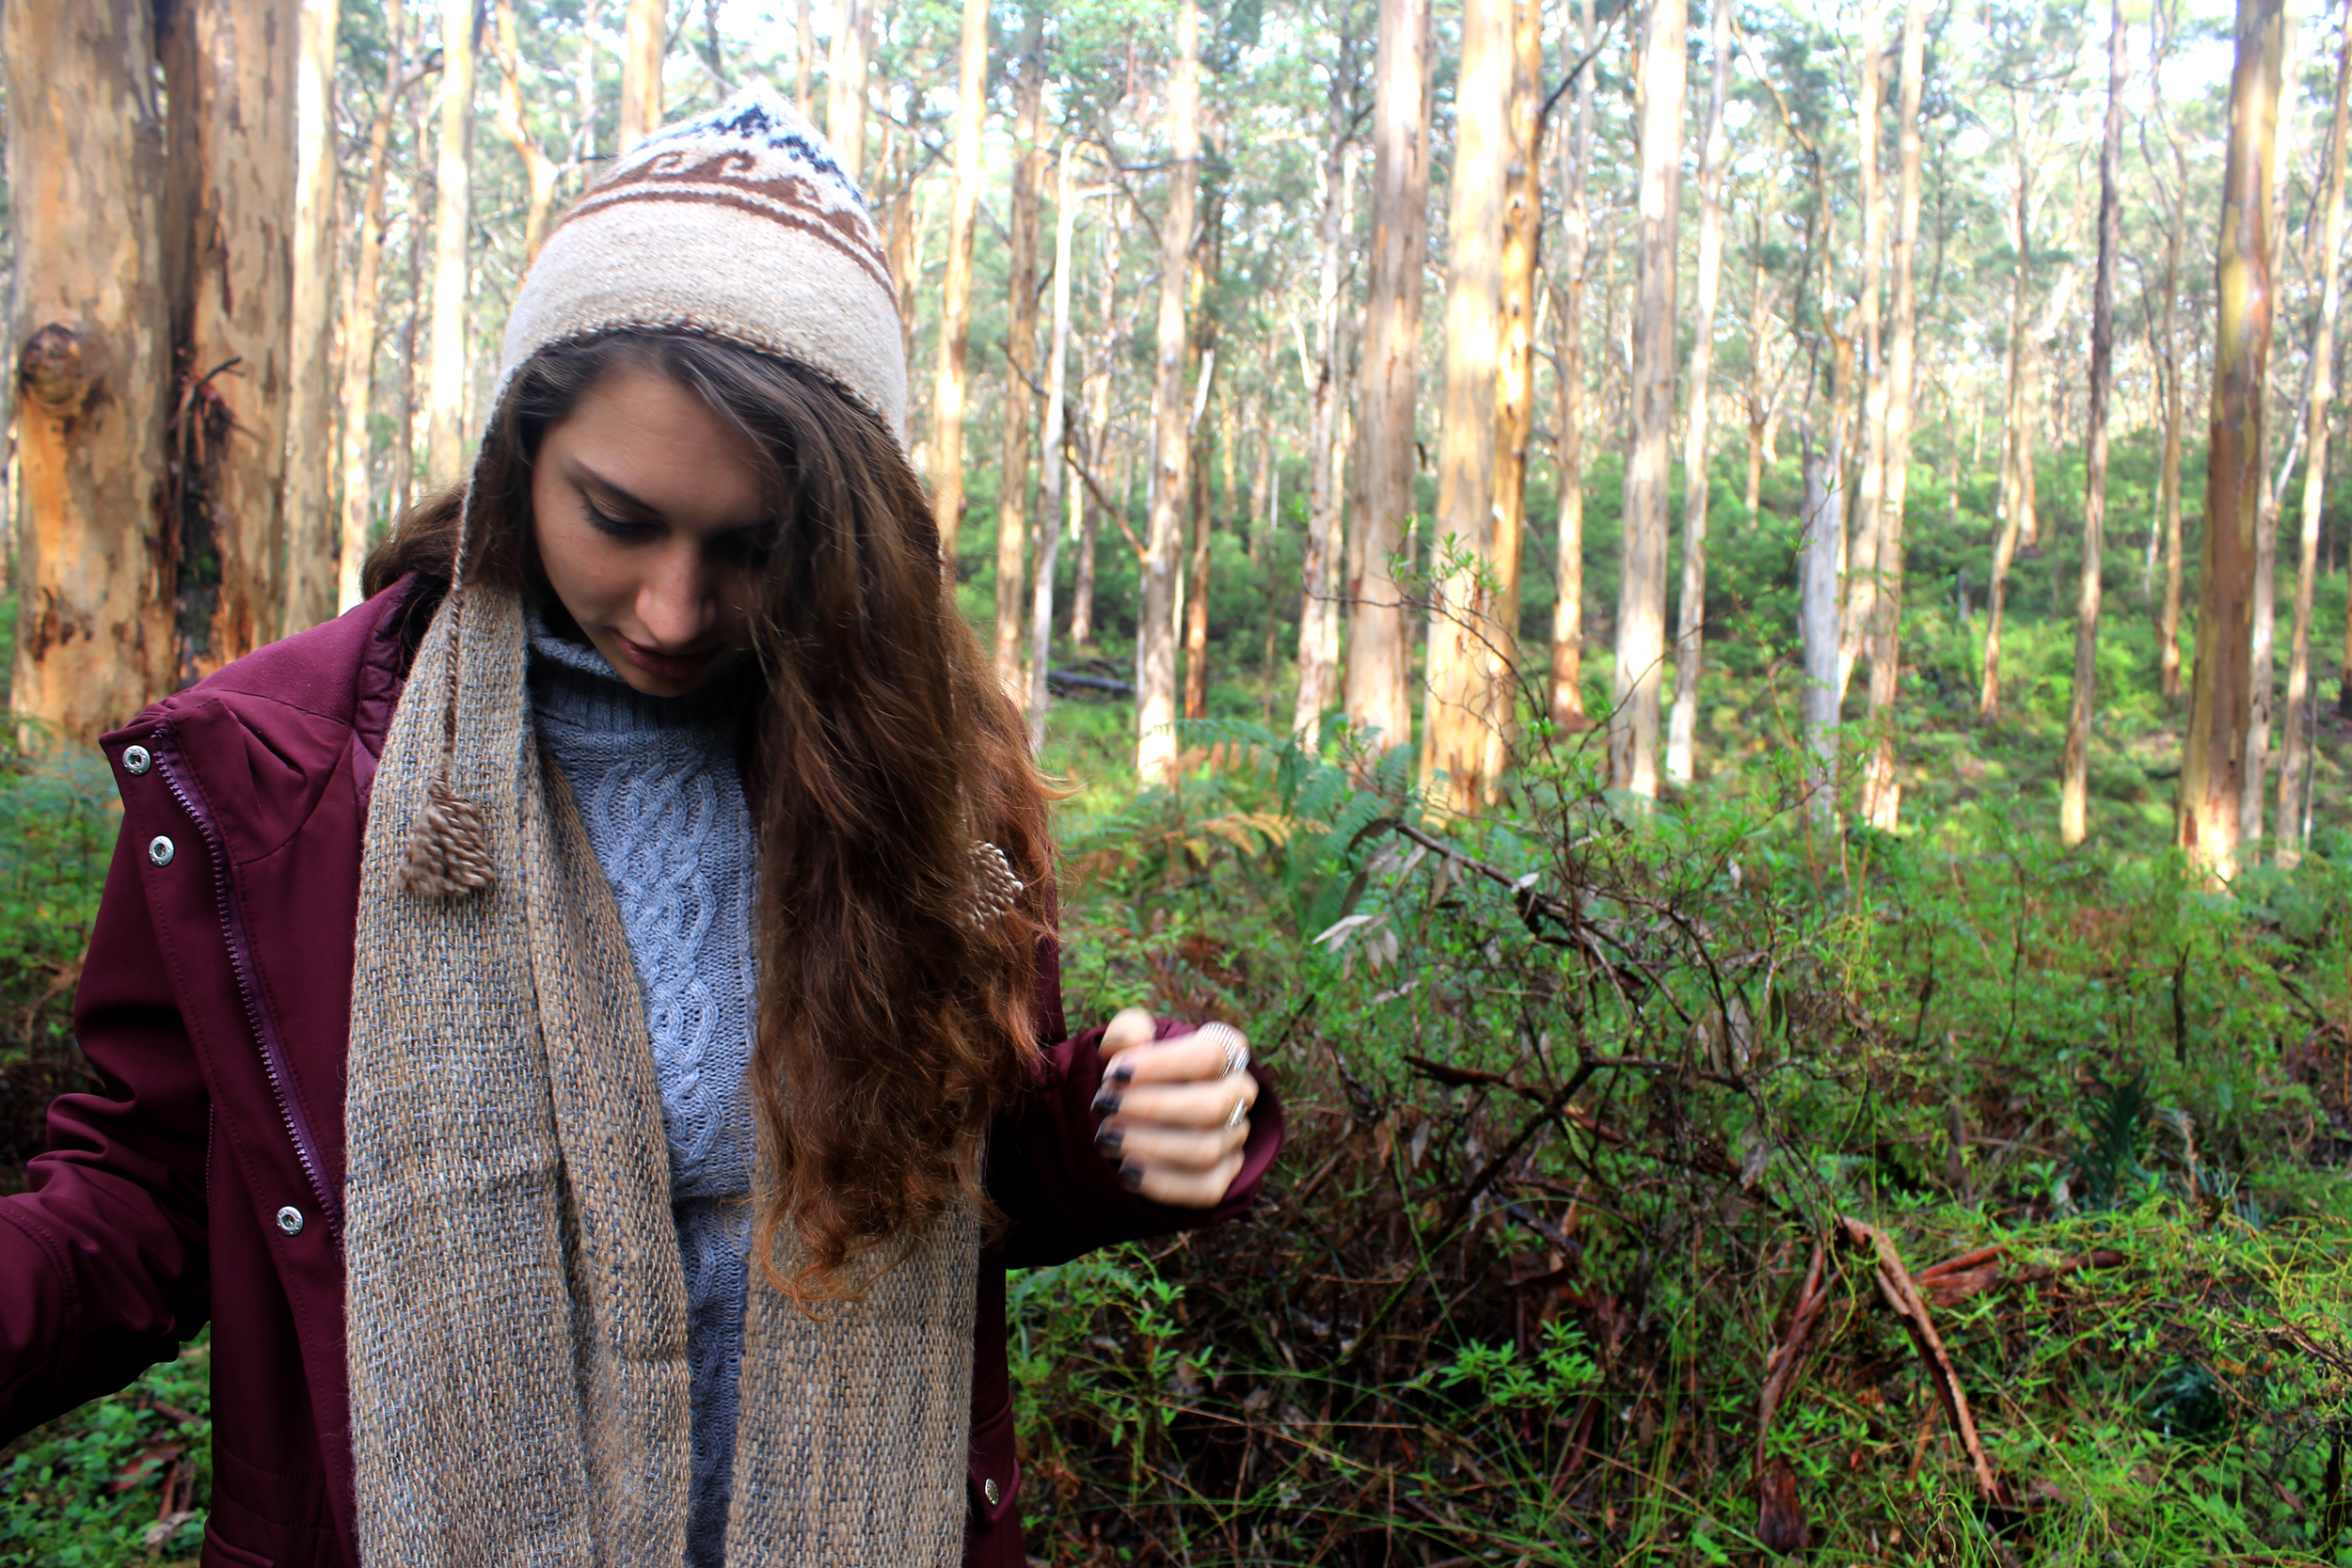 Scarves & Chullos - Alpaca woven scarf and hand-knitted Chulloat Boronyup Forest, Western Australia